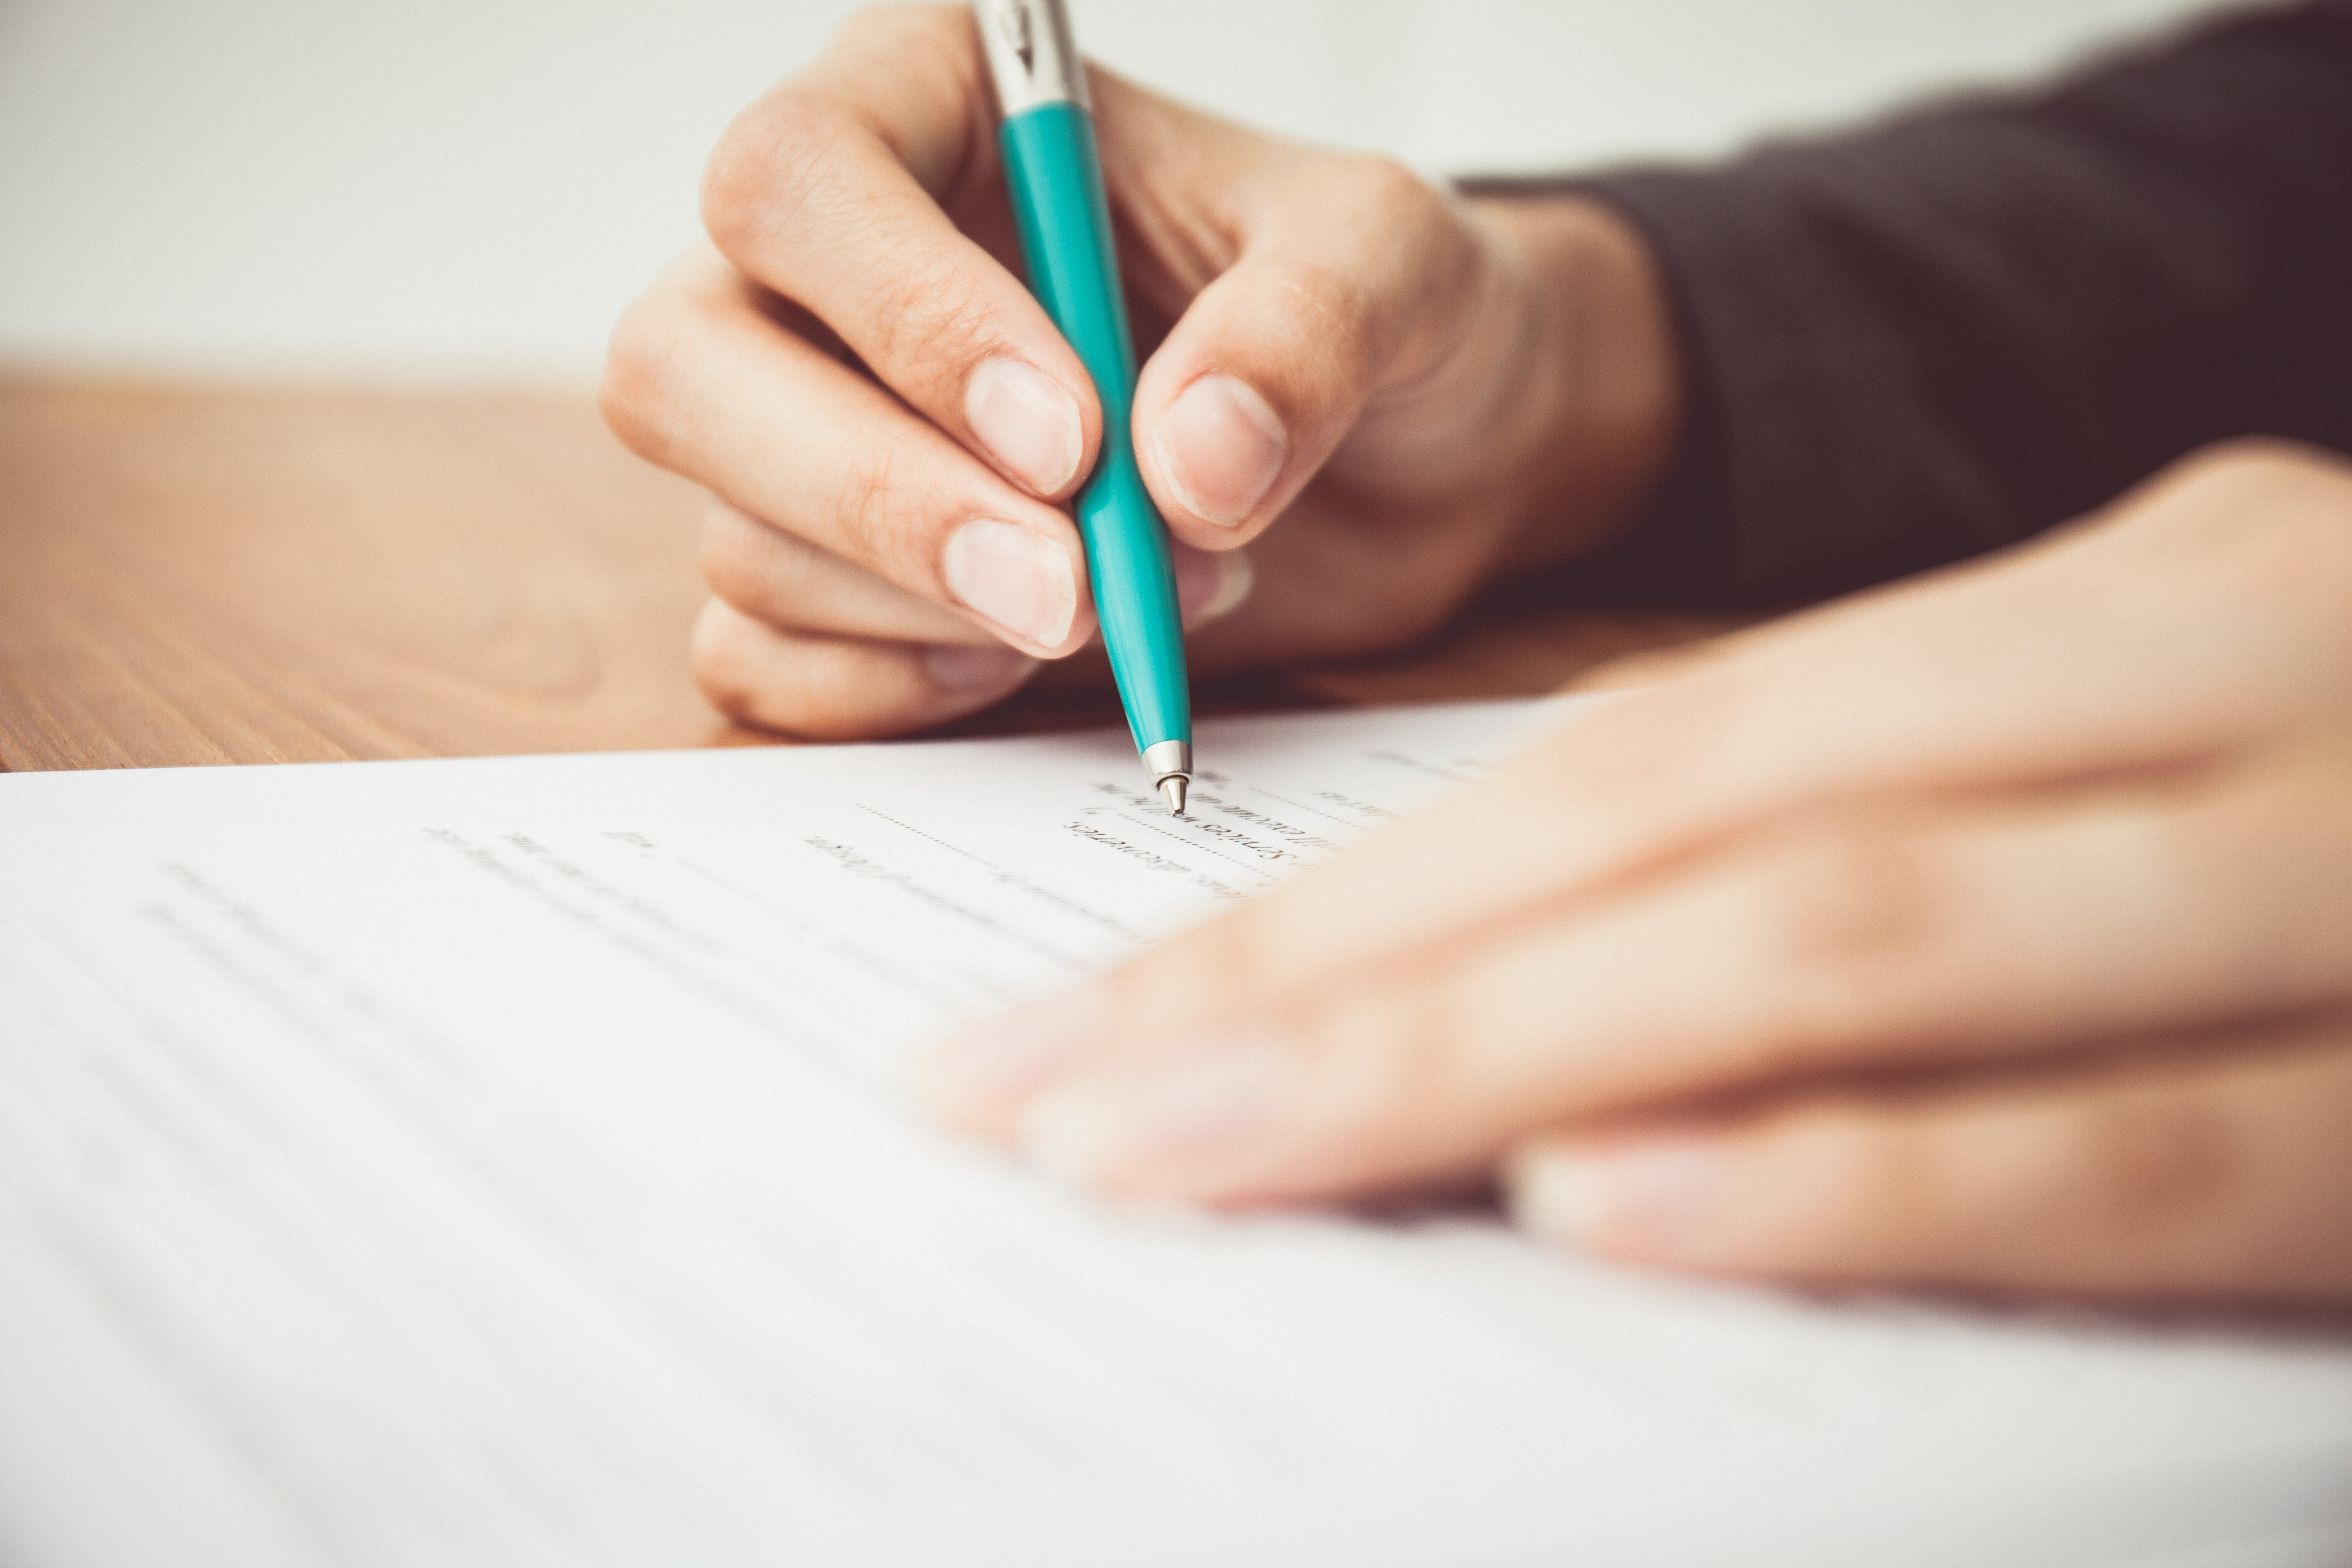 How to Write a Contract for Selling a Car